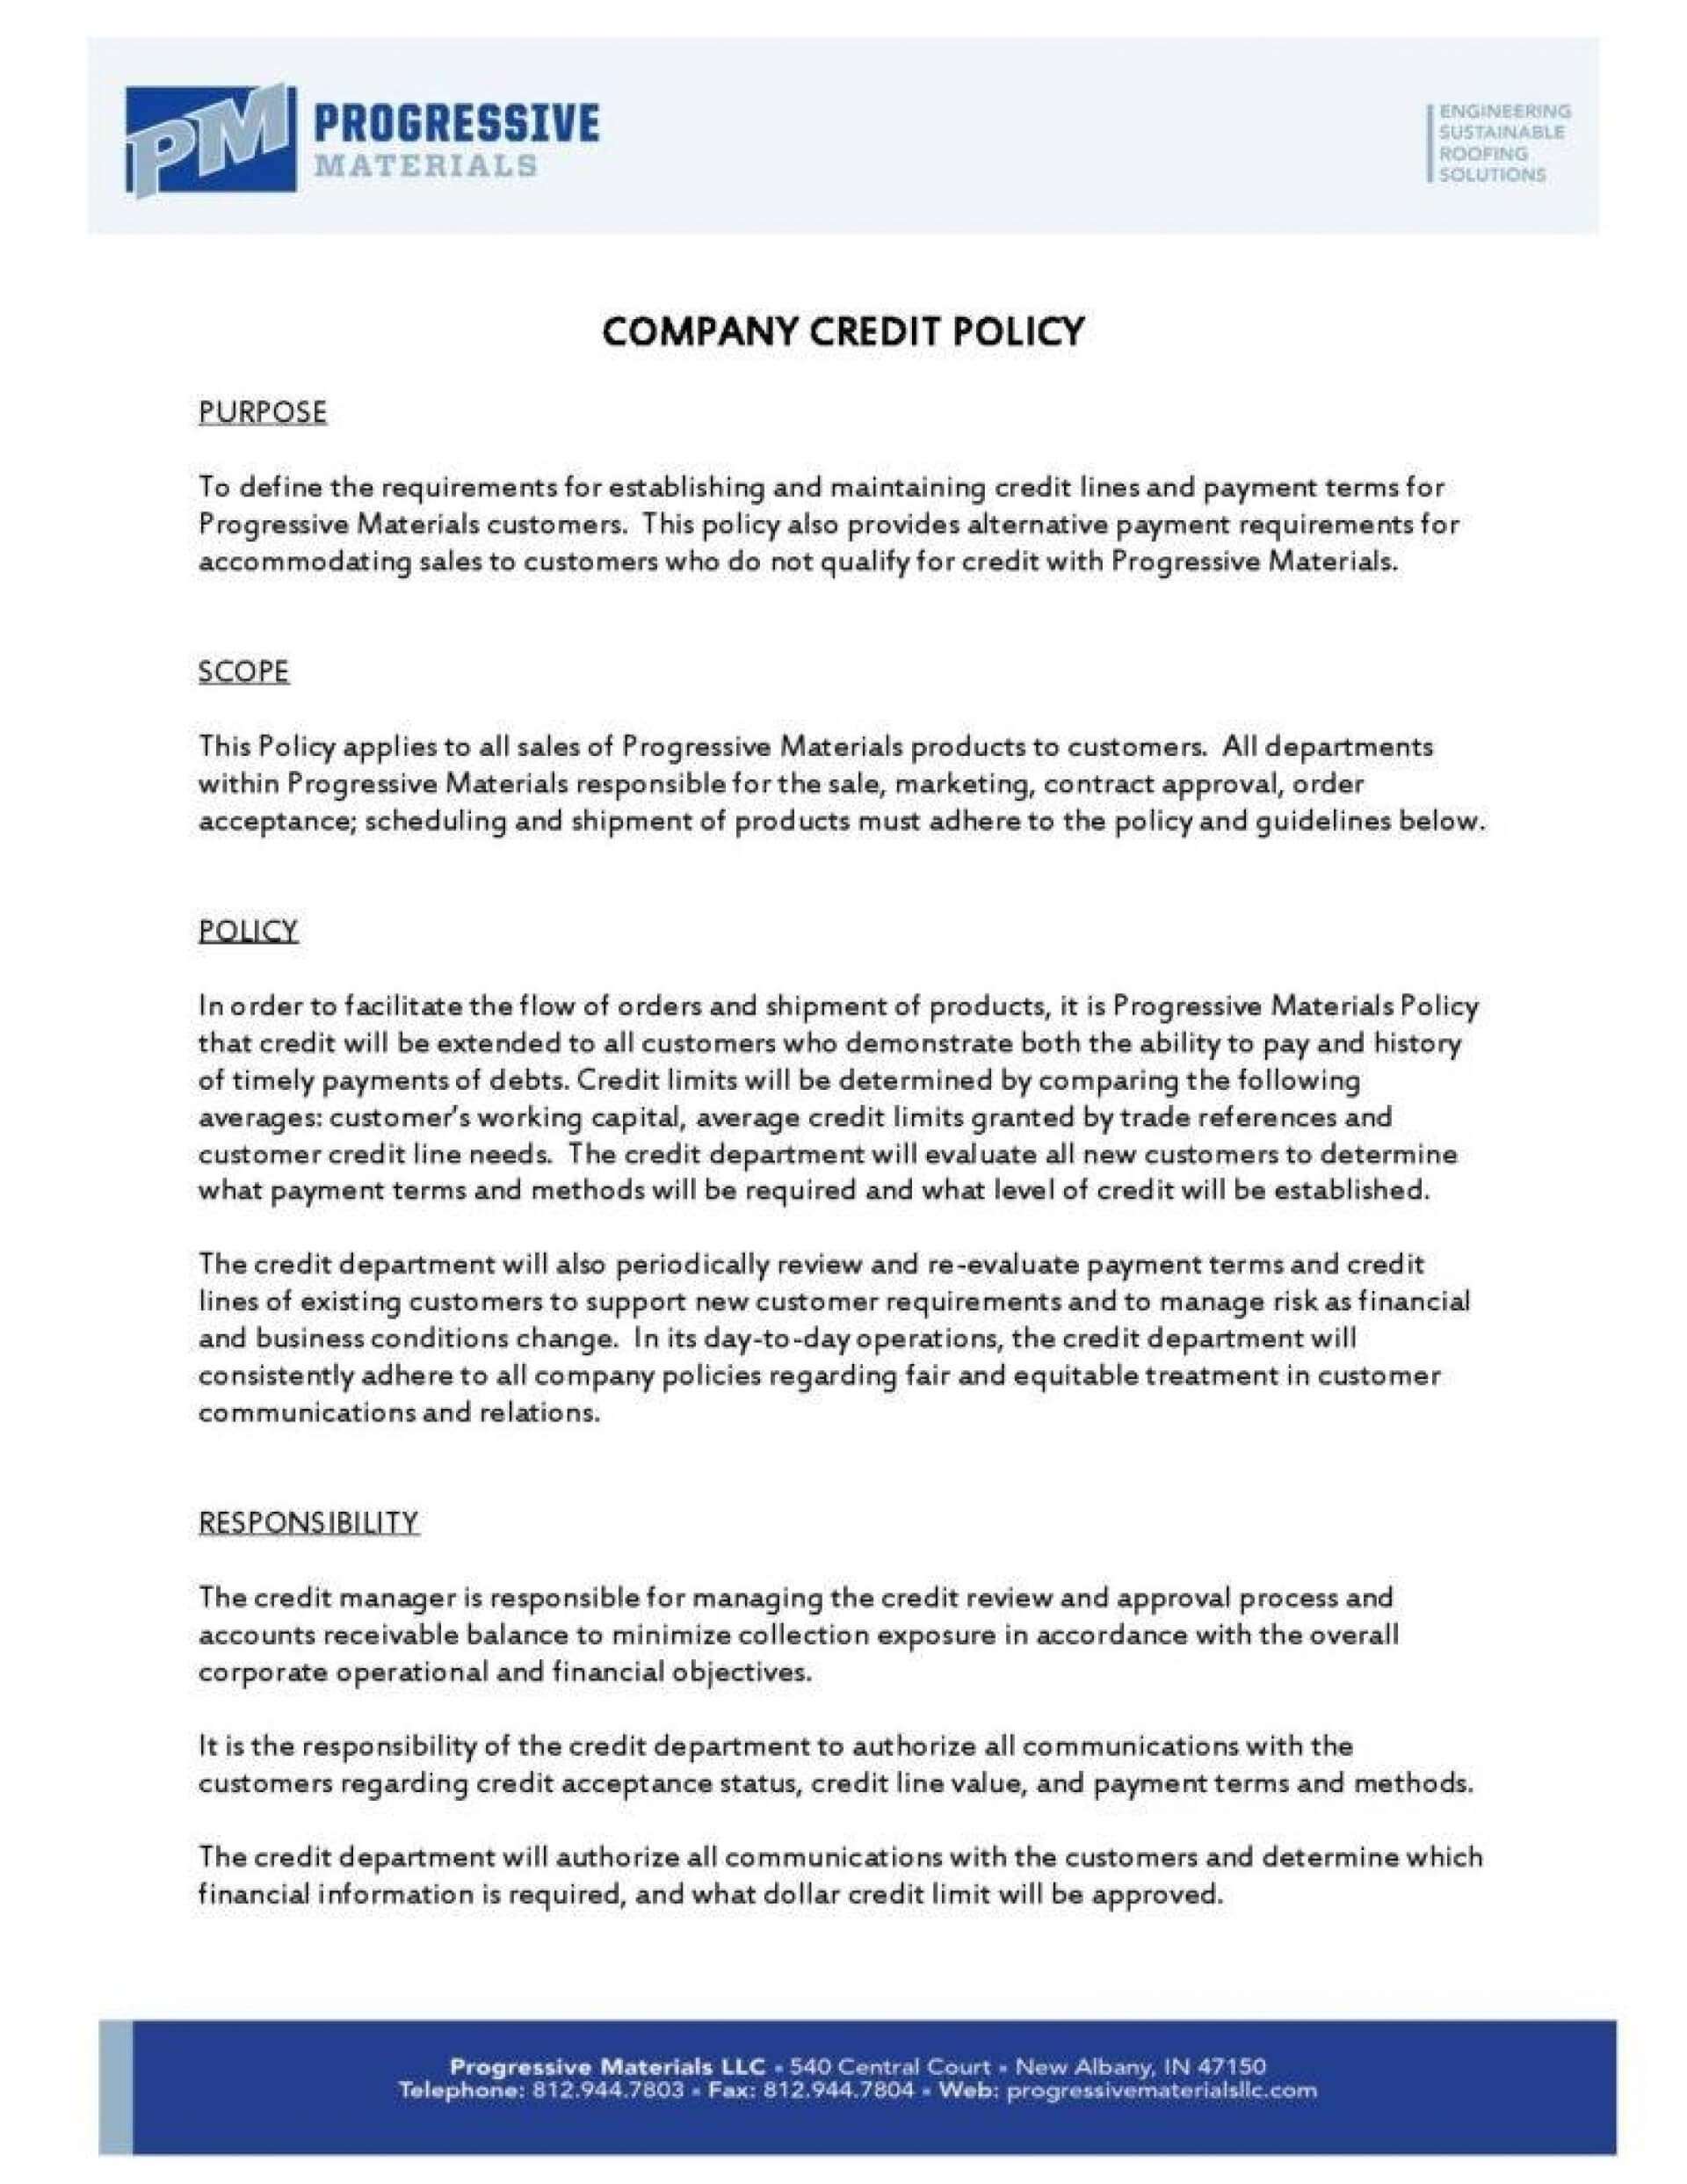 002 Template Ideas Dress Code Policy Company Credit Page In Company Credit Card Policy Template